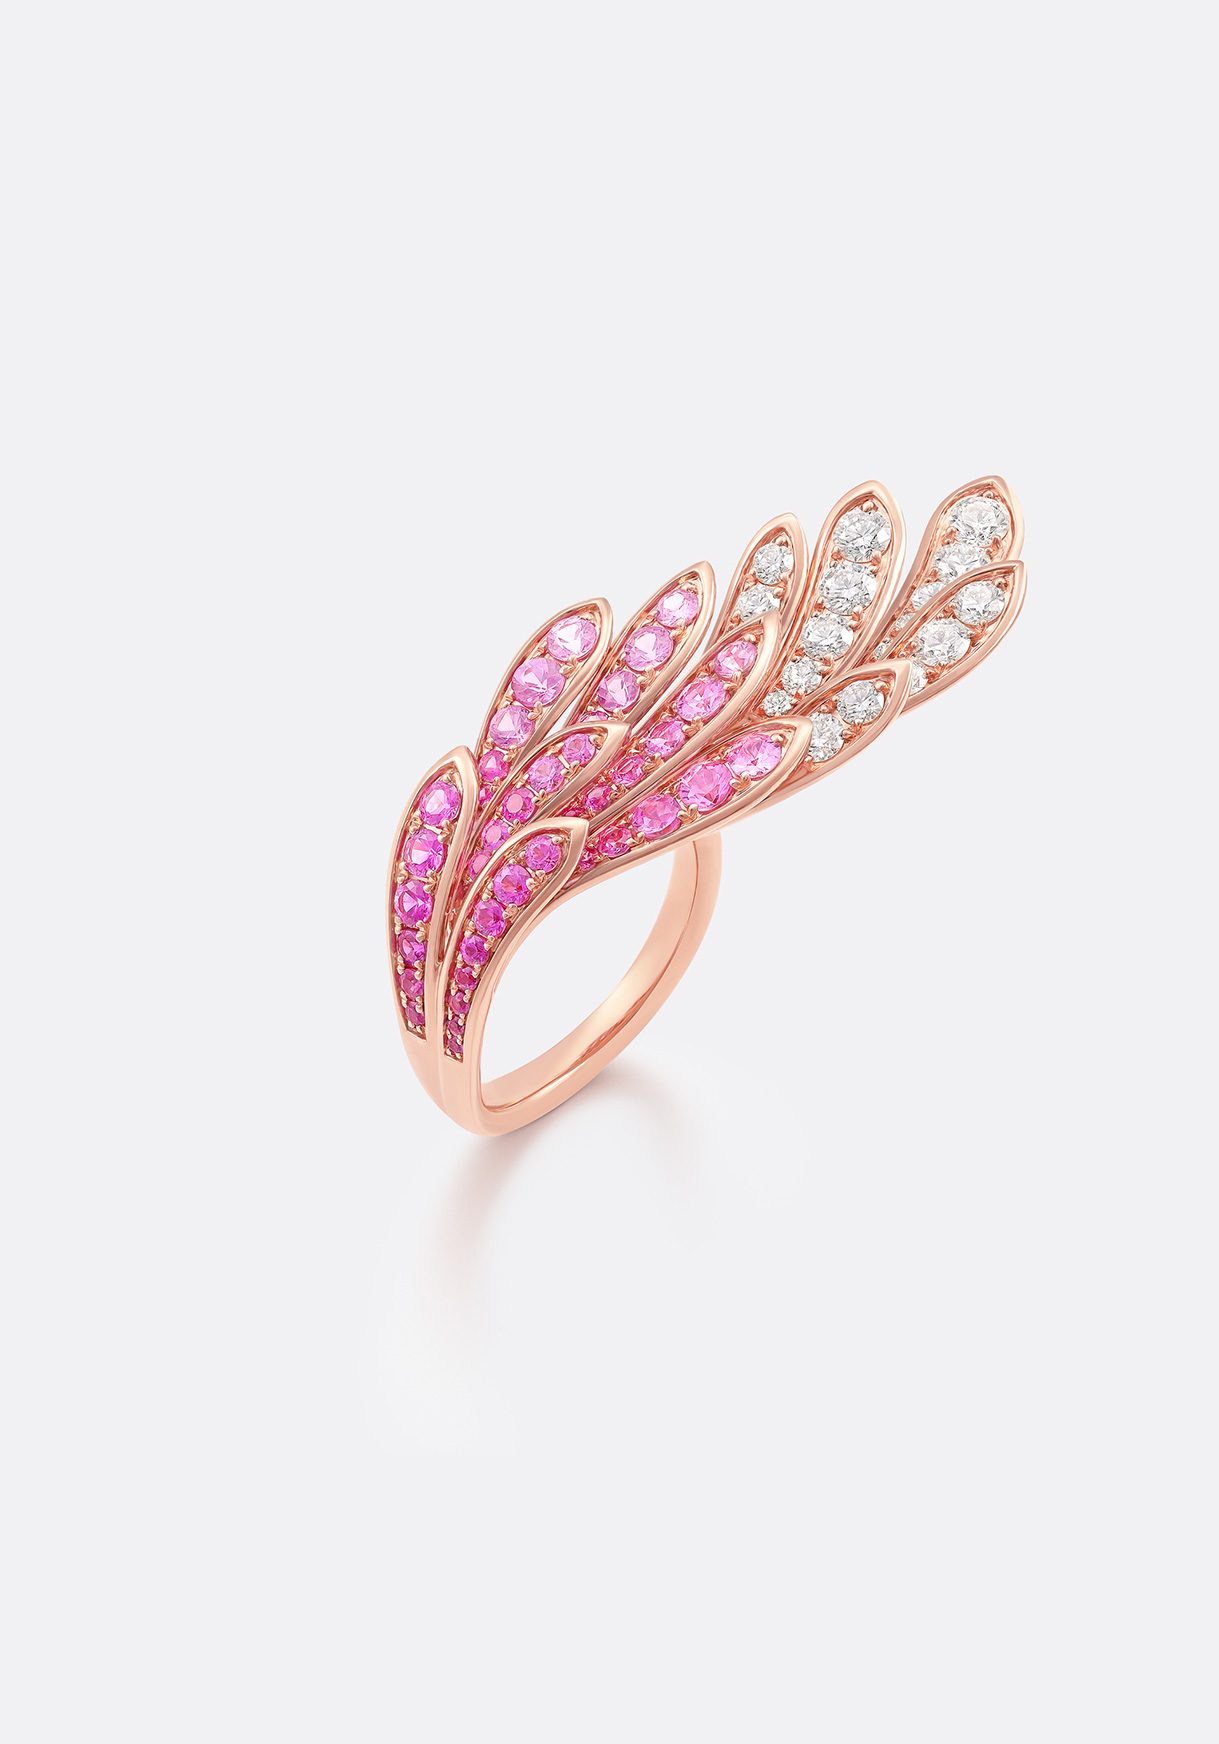 Ring - nuanced craftsmanship evokes a bird in flight.